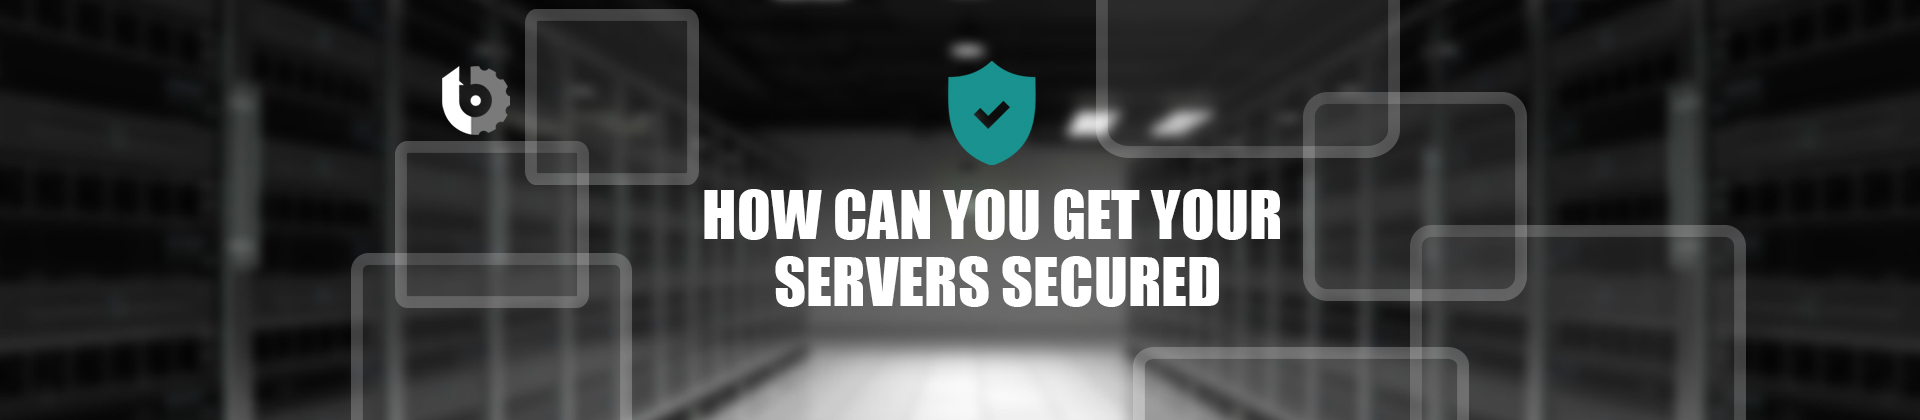 How can you get your servers secured?